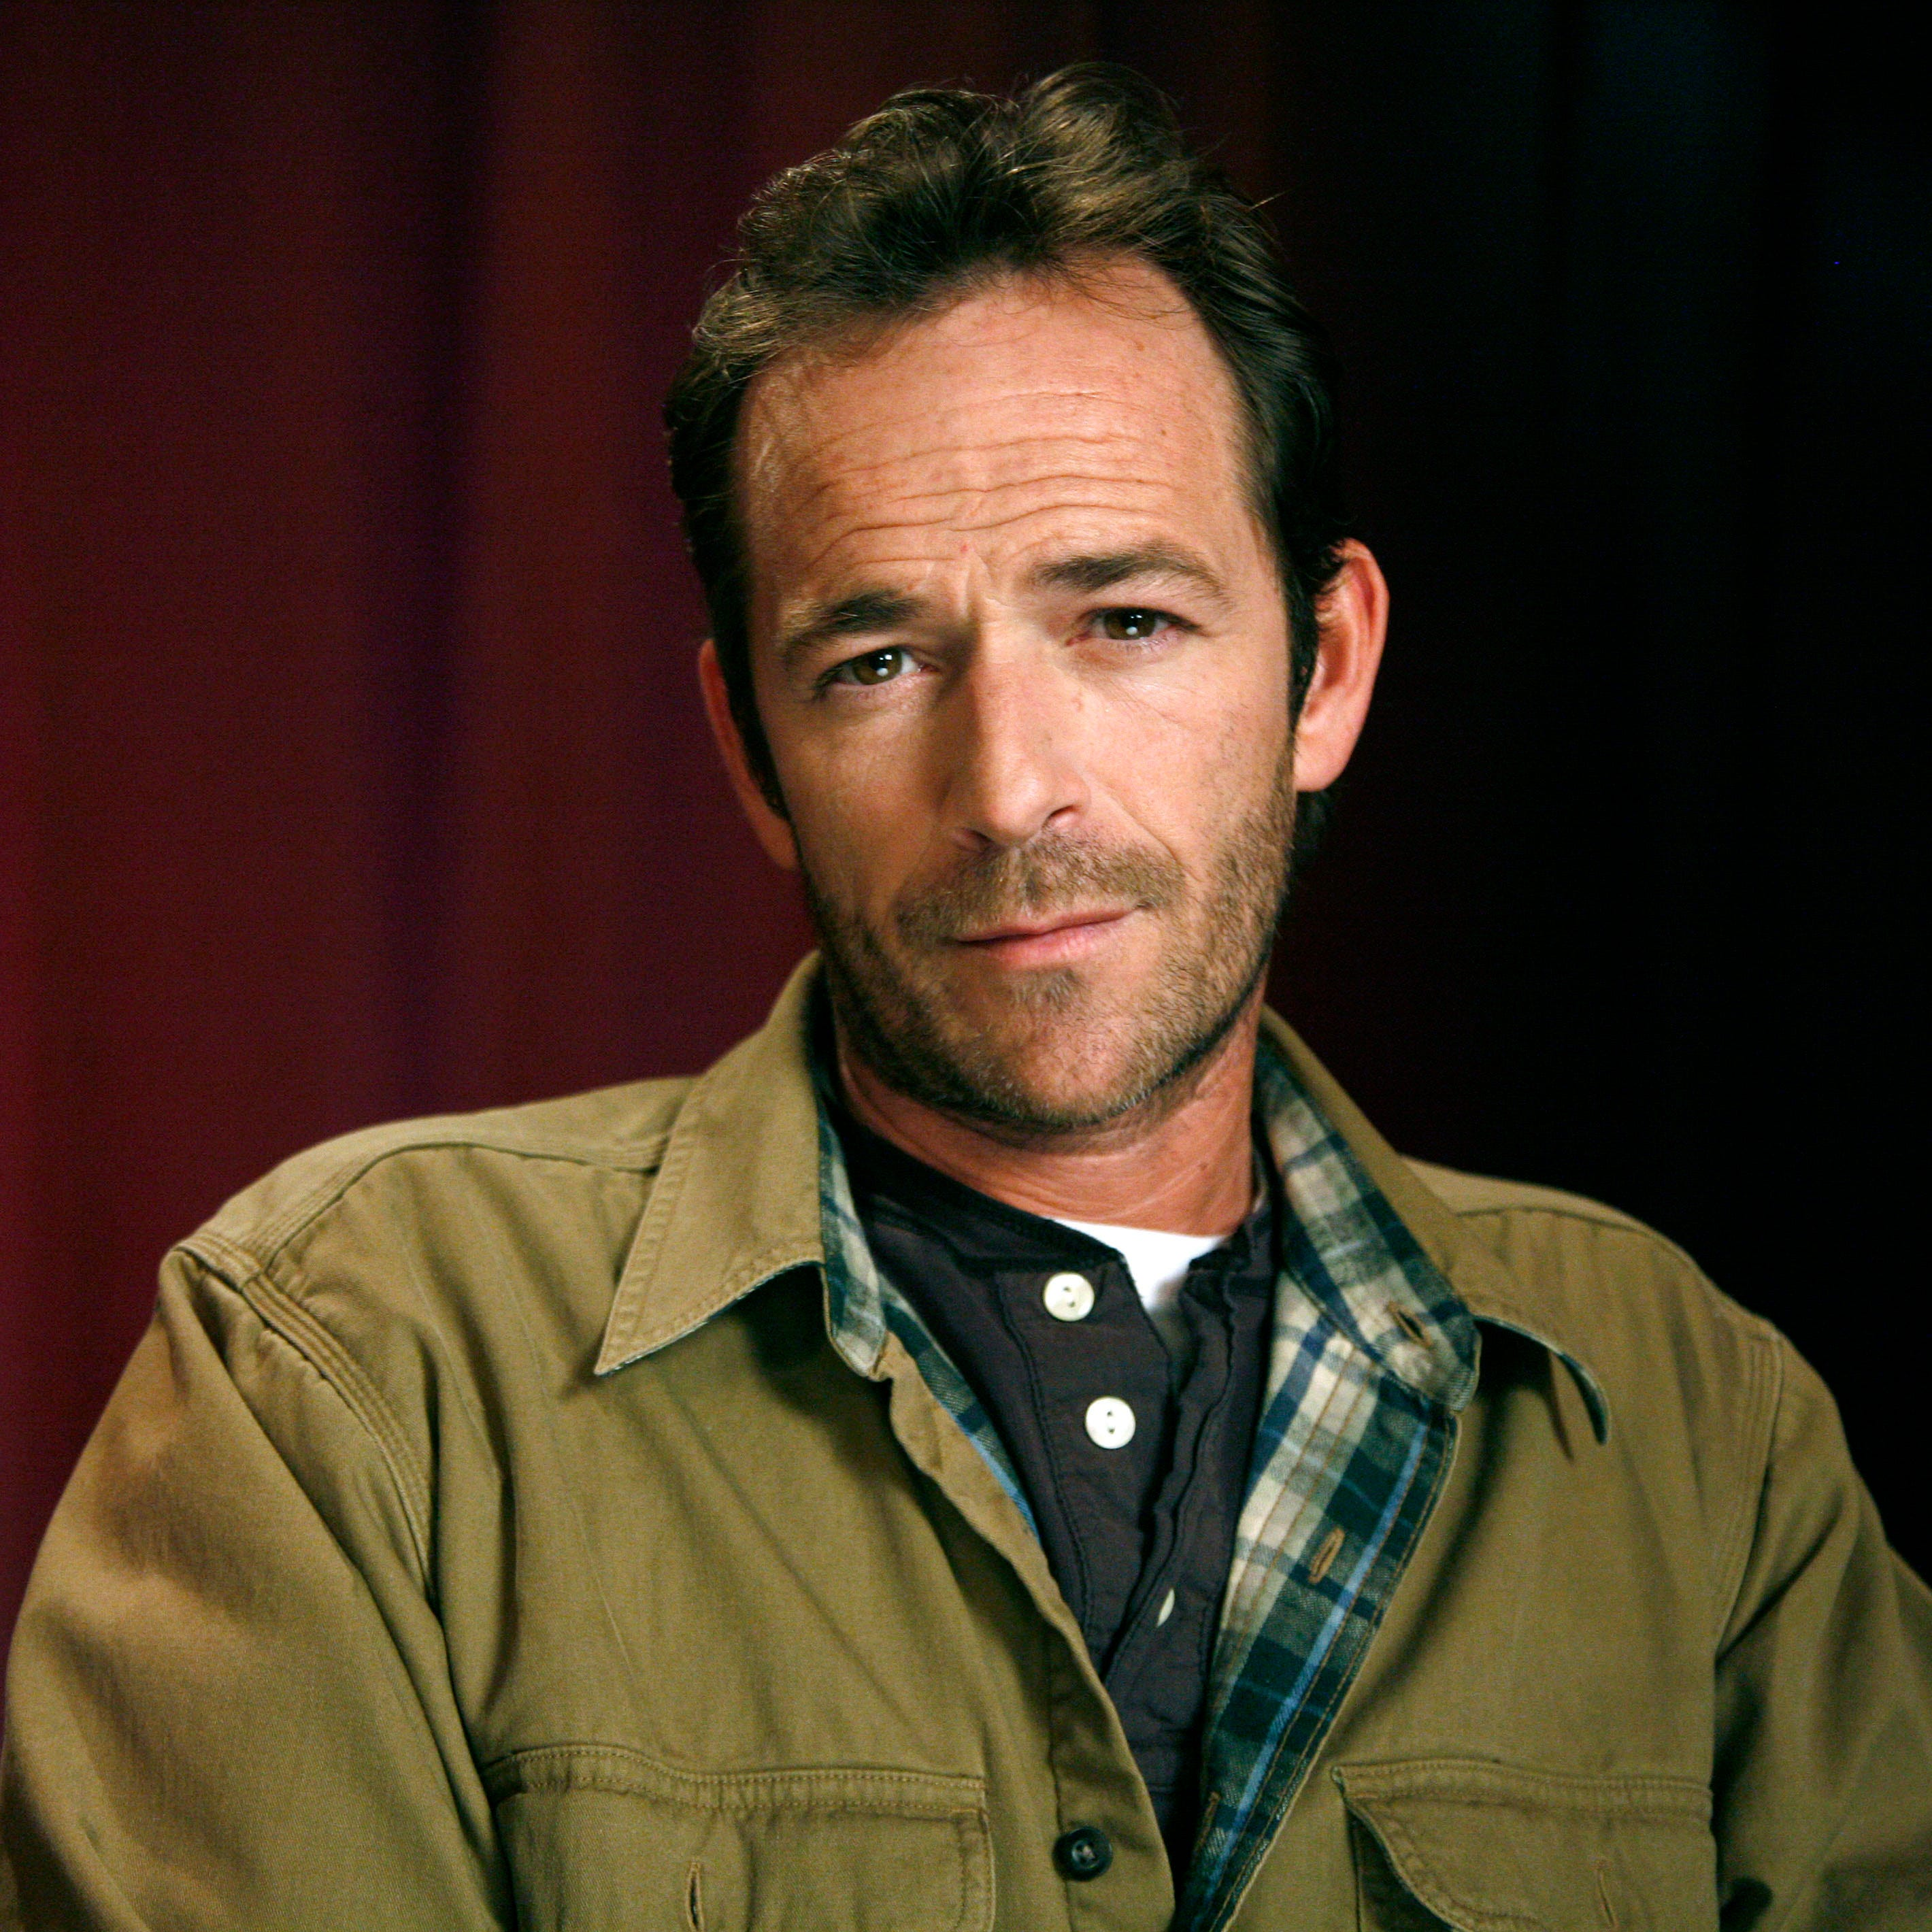 Luke Perry buried near Tennessee home, according to death certificate